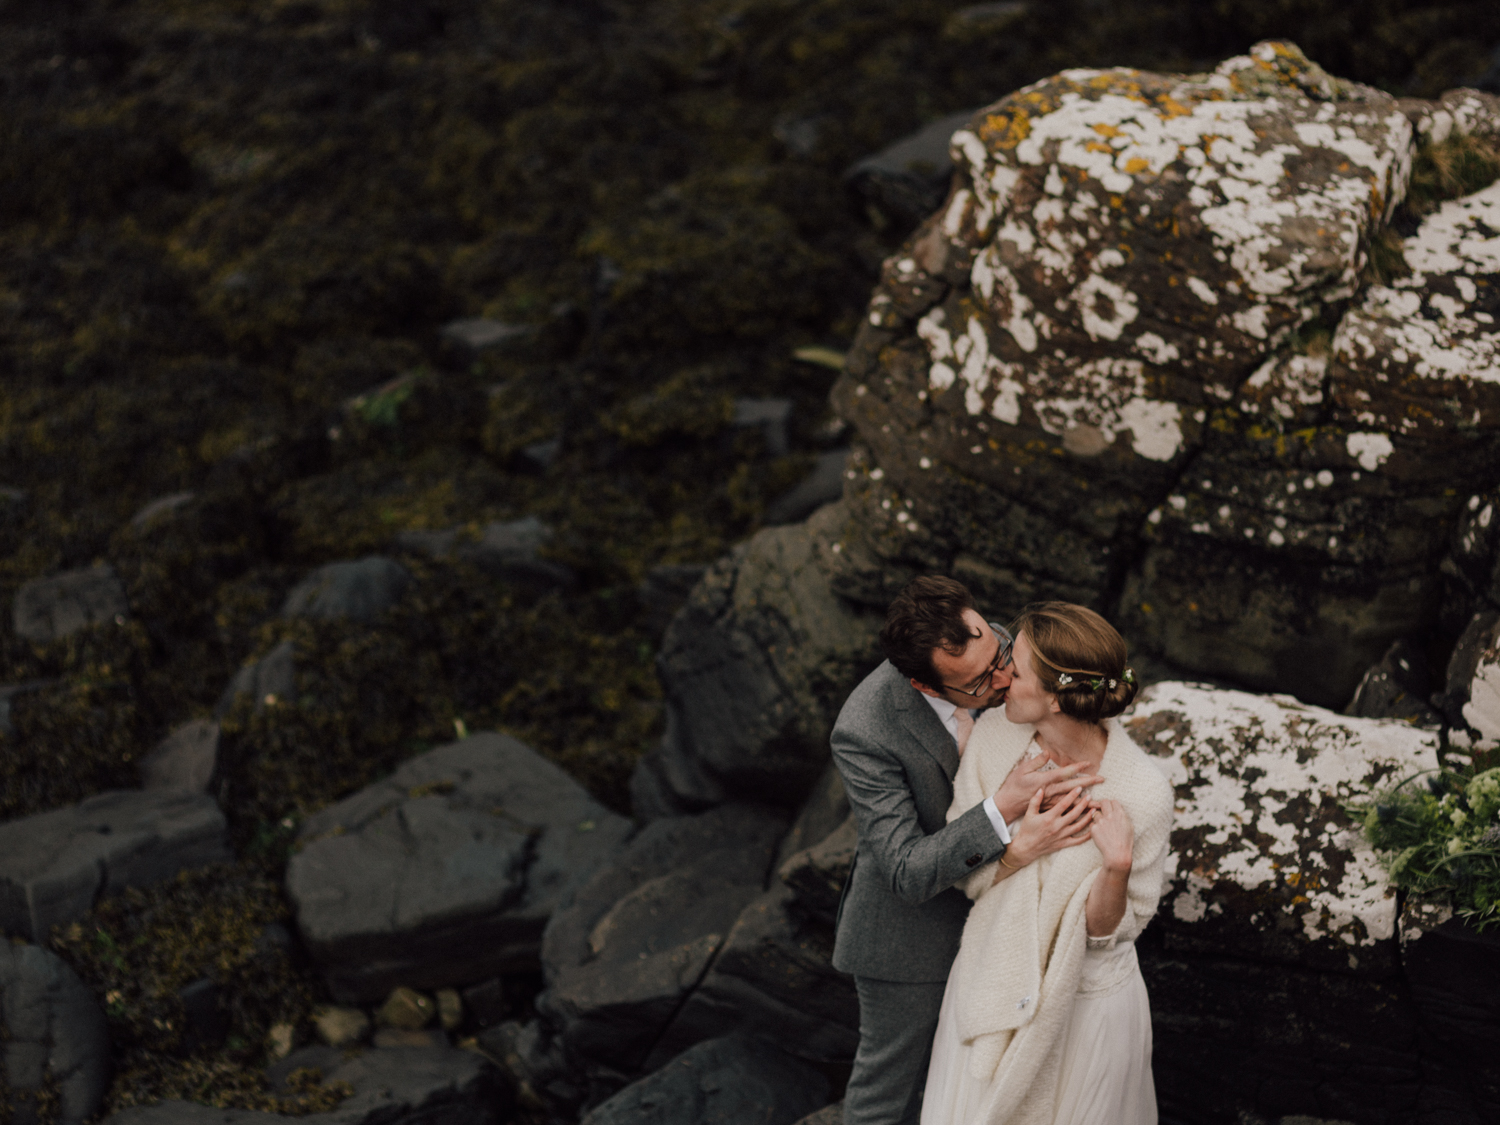 capyture-wedding-photographer-destination-nature-intimate-wedding-isle-of-skye-scotland-402